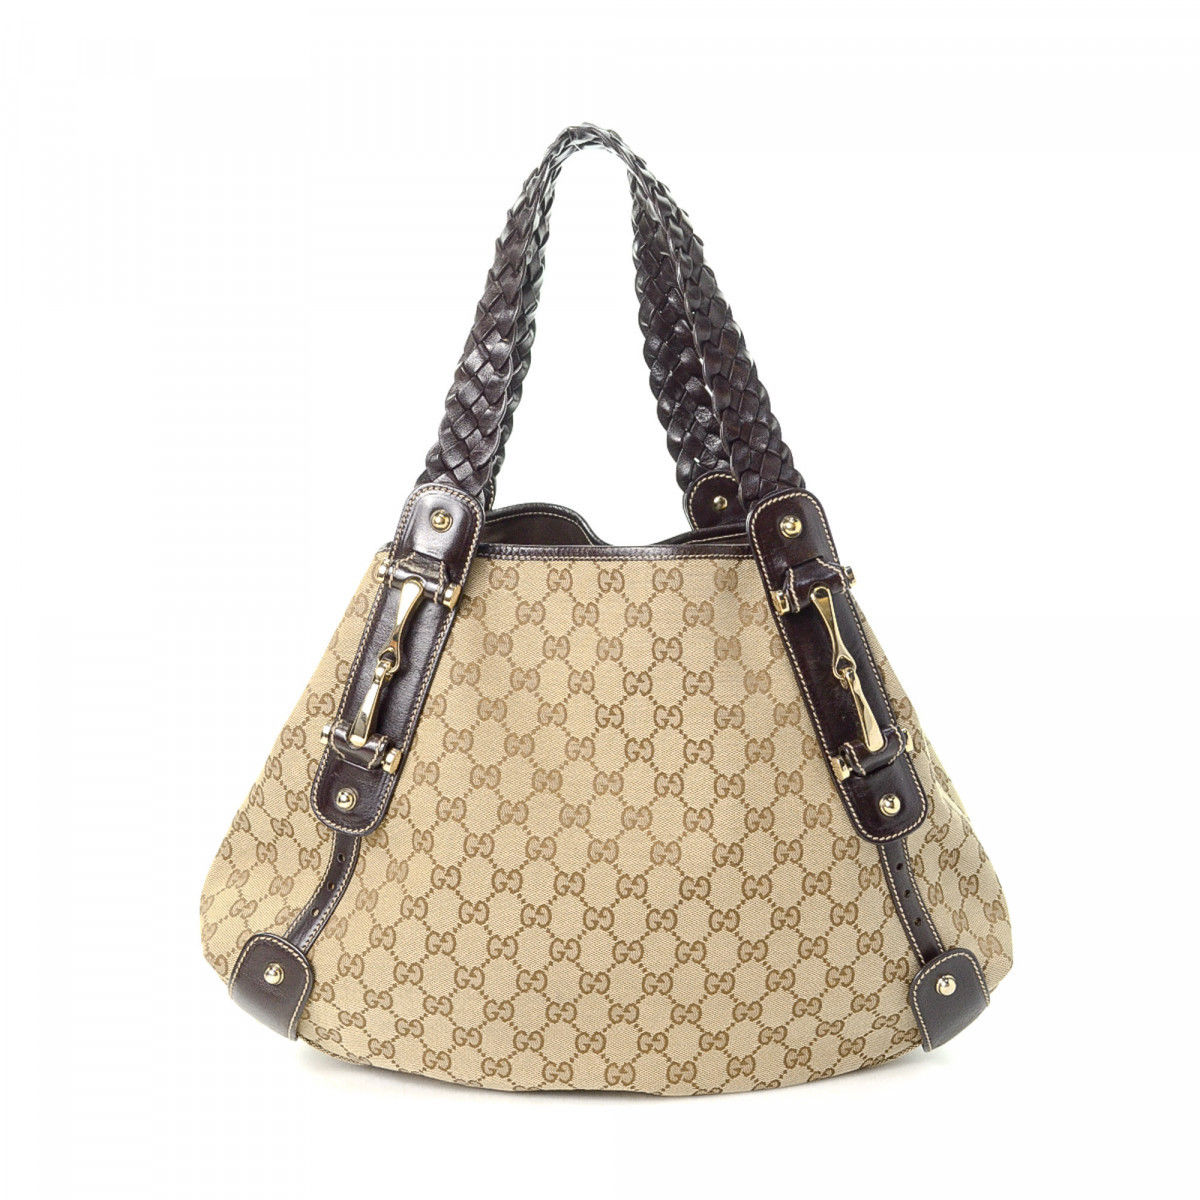 51adc5241dc8 Gucci Pelham. Free Shipping. The authenticity of this vintage Gucci Pelham  shoulder bag ...